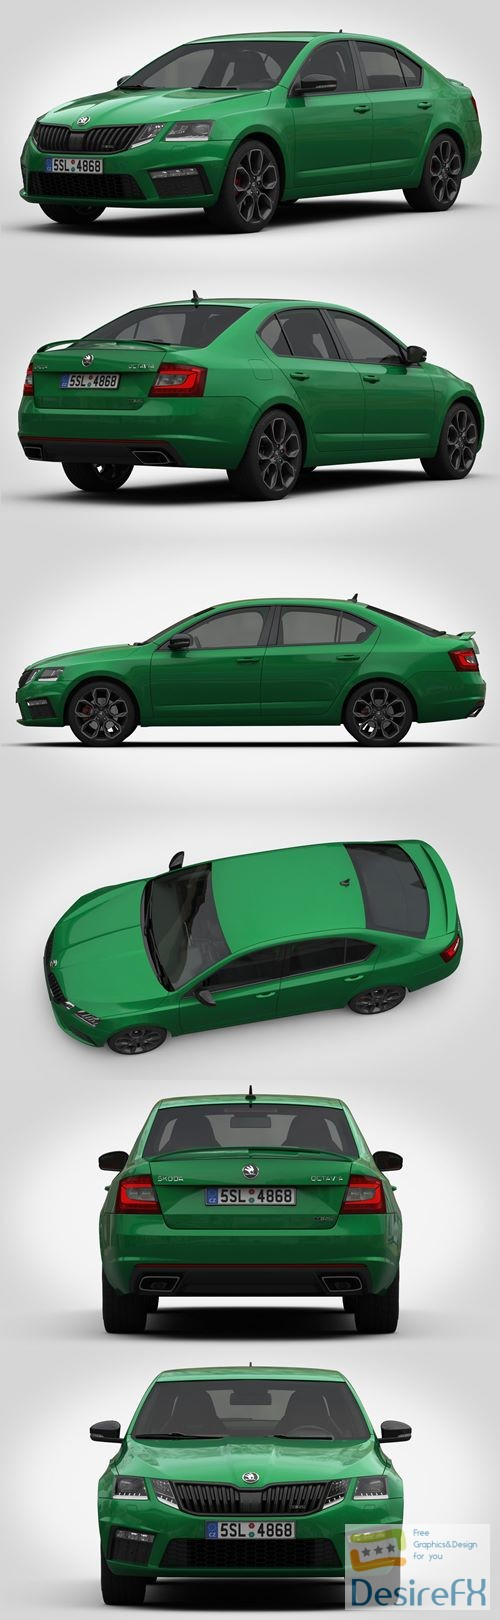 3d-models - Skoda Octavia RS 2017 3D Model